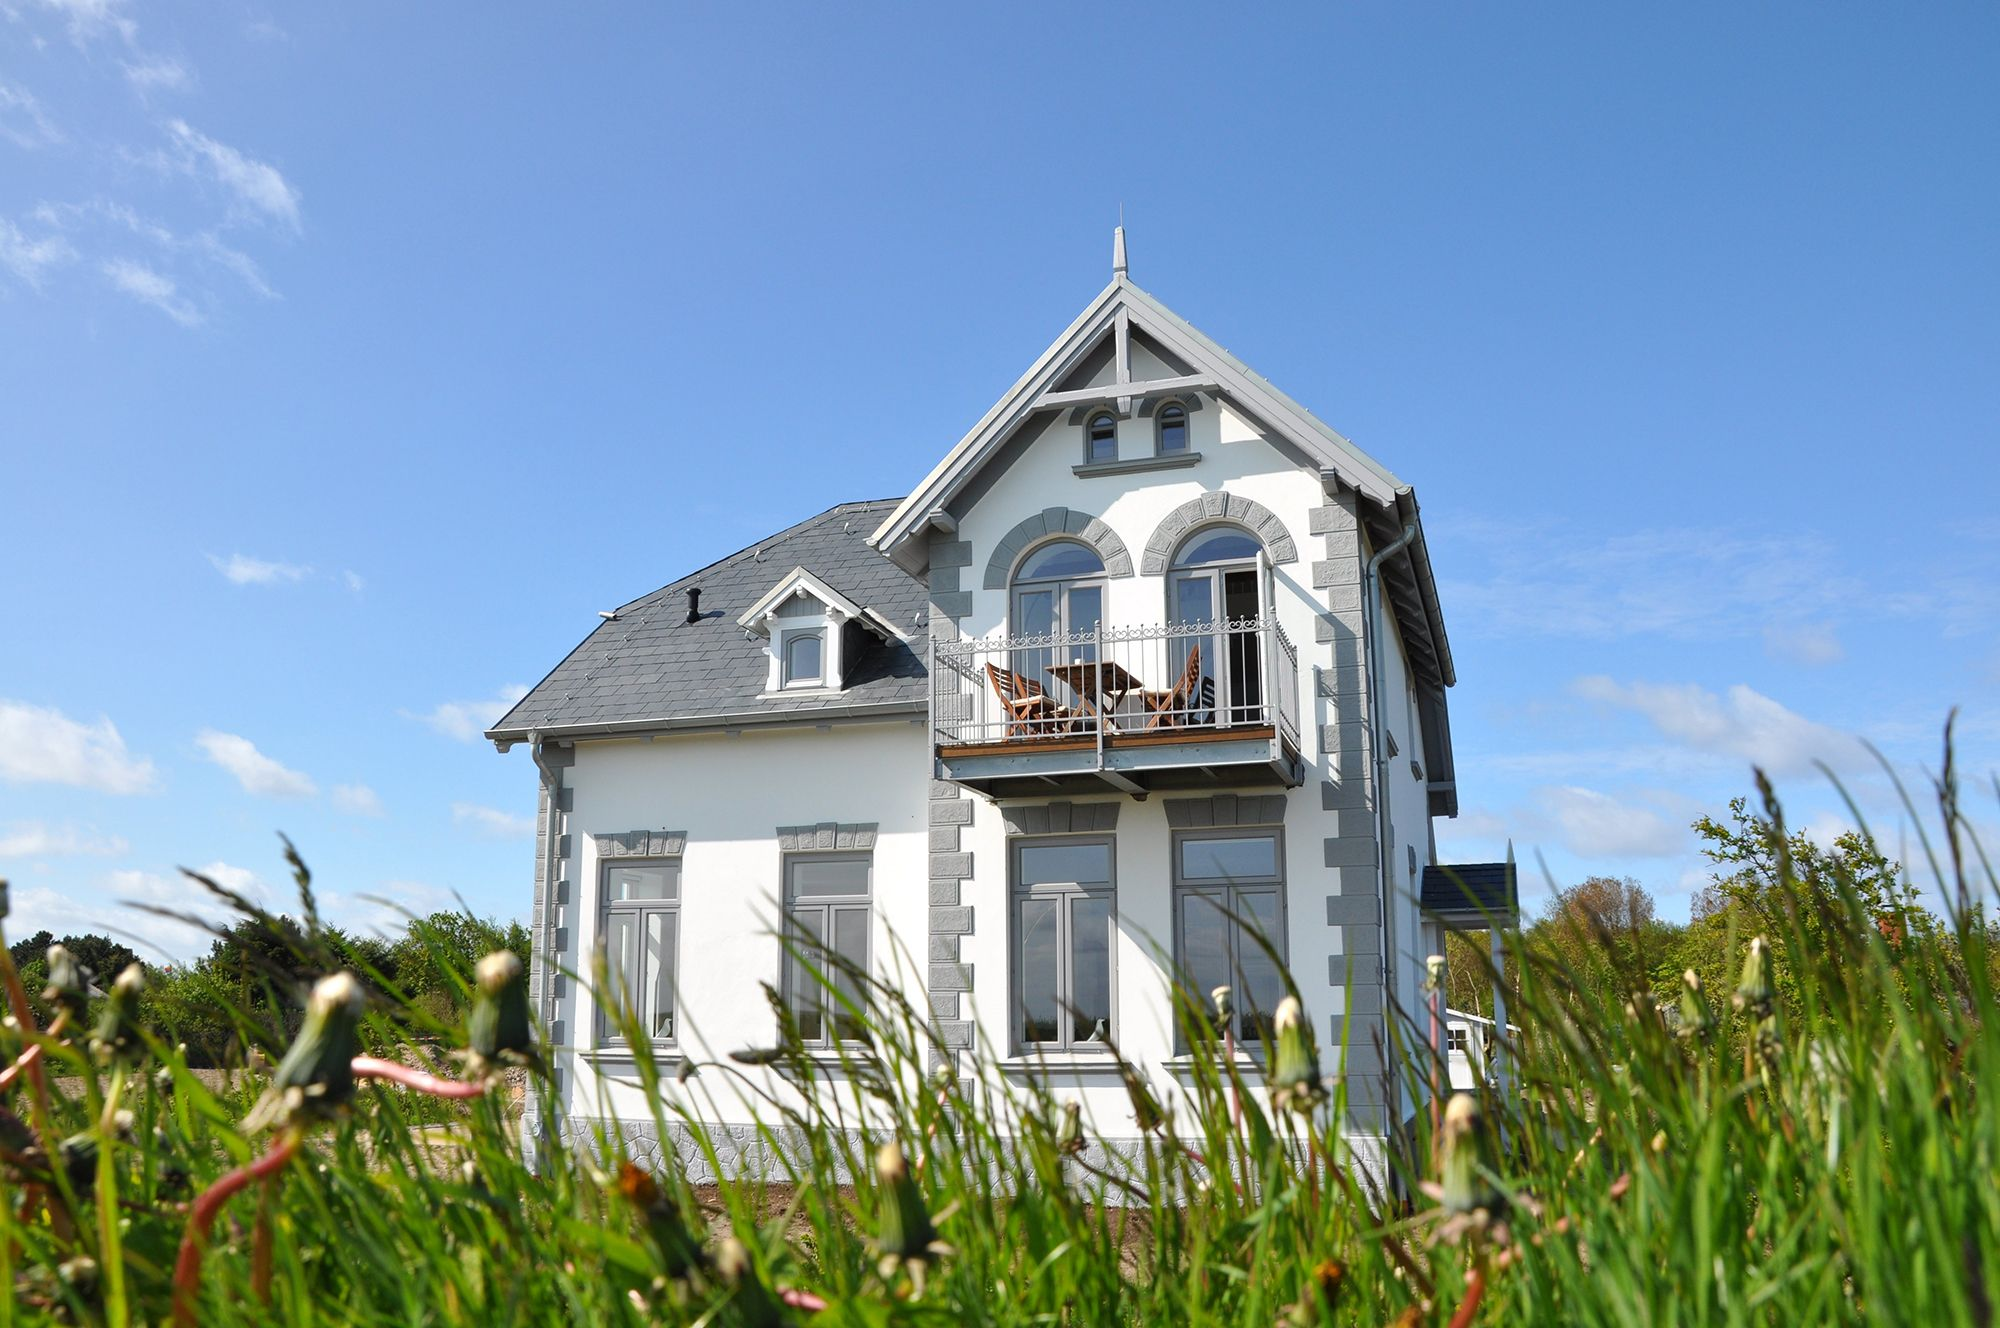 Villa Helgoland auf Amrum – Just another WordPress site | Urlaub ...